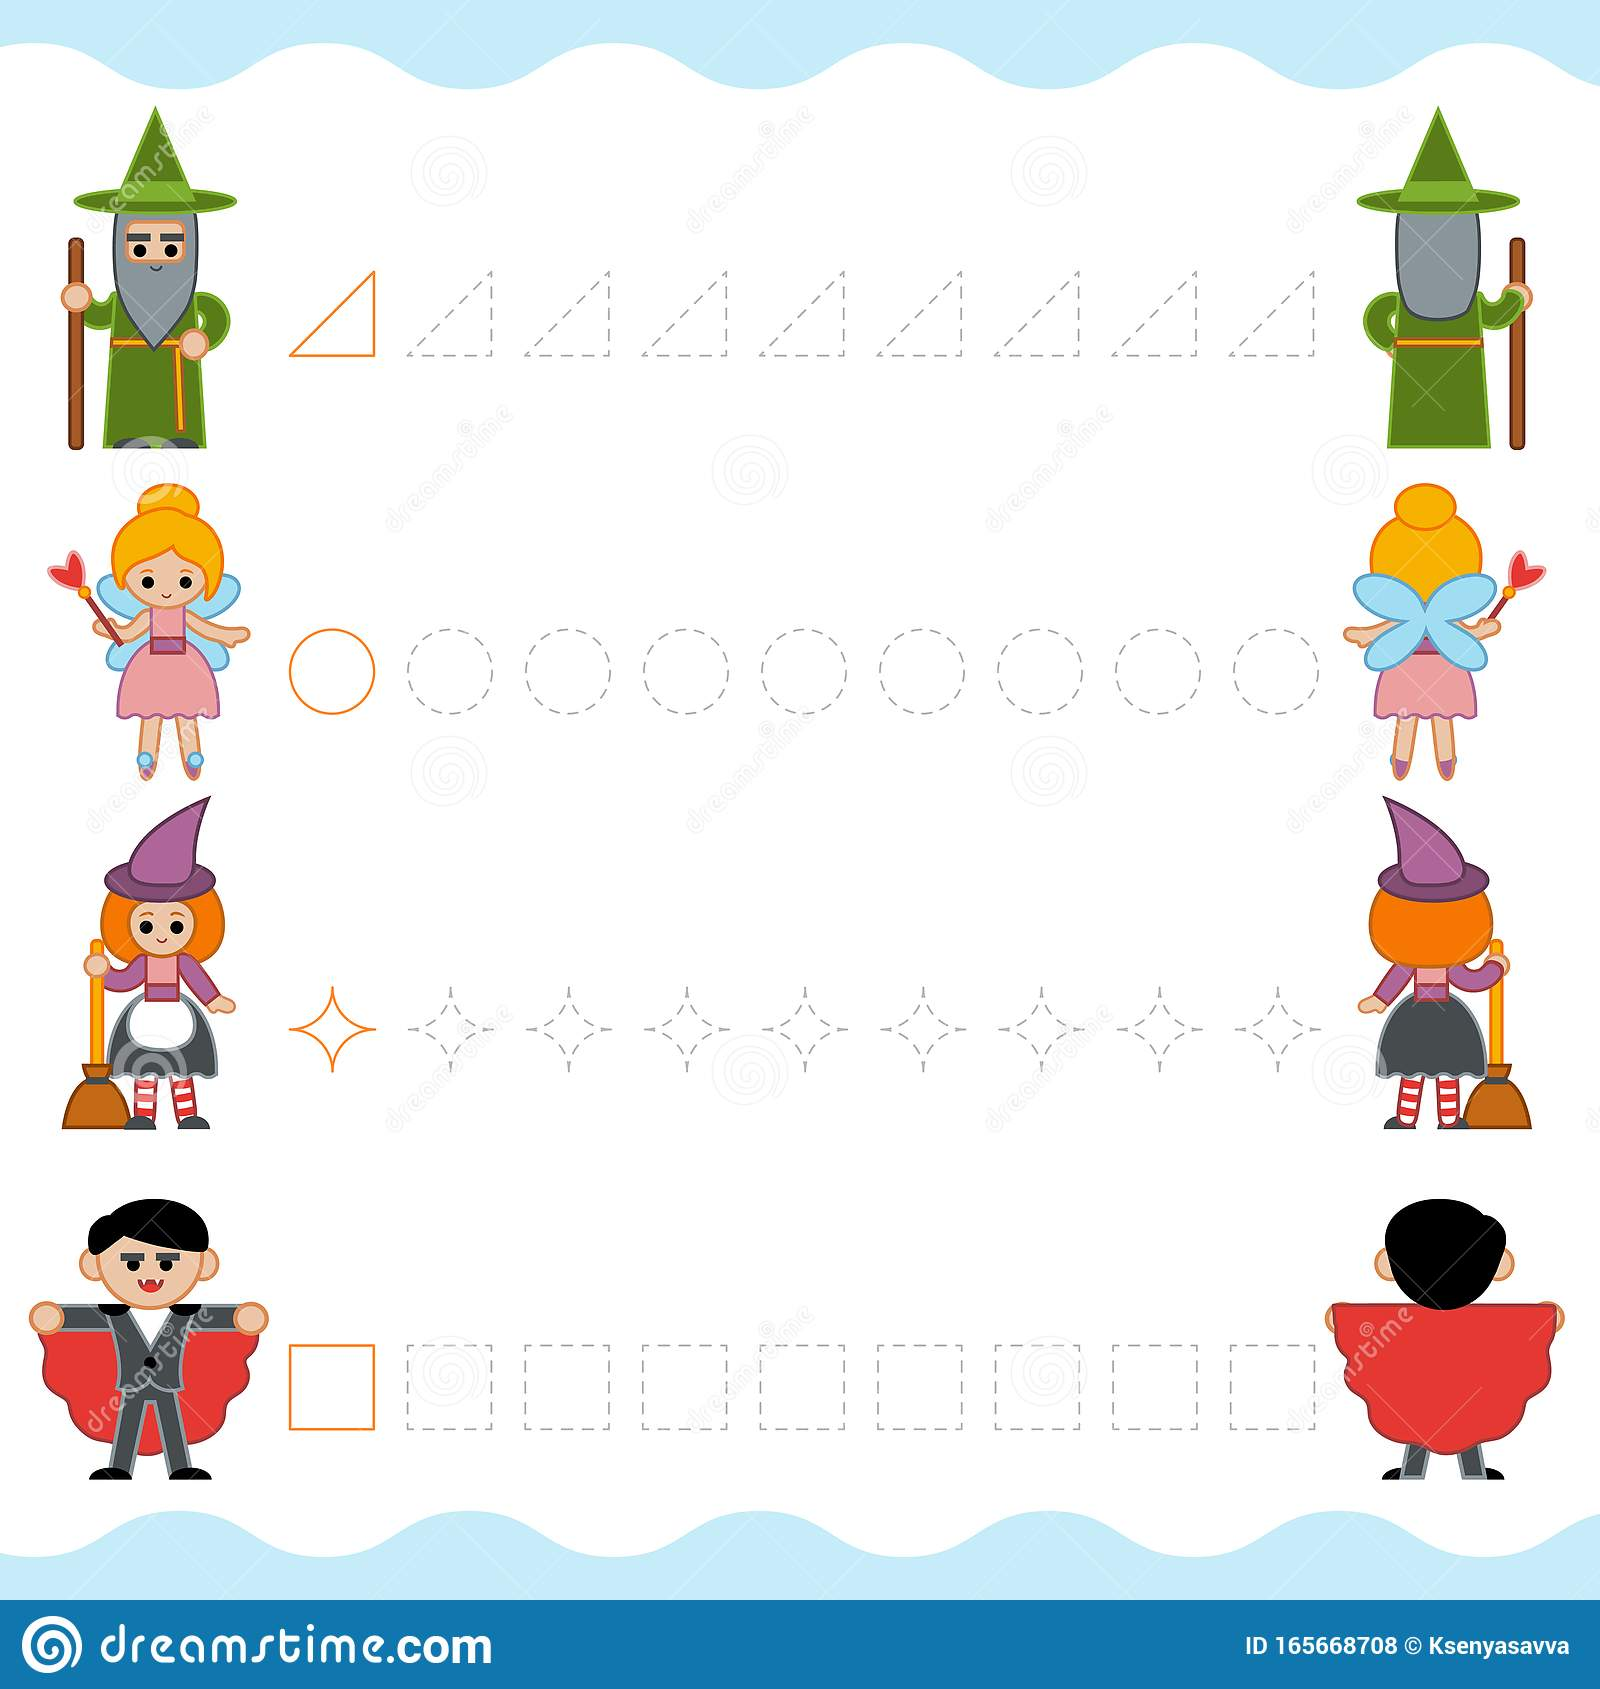 hight resolution of Fairy Tail Worksheet For Preschoolers   Printable Worksheets and Activities  for Teachers